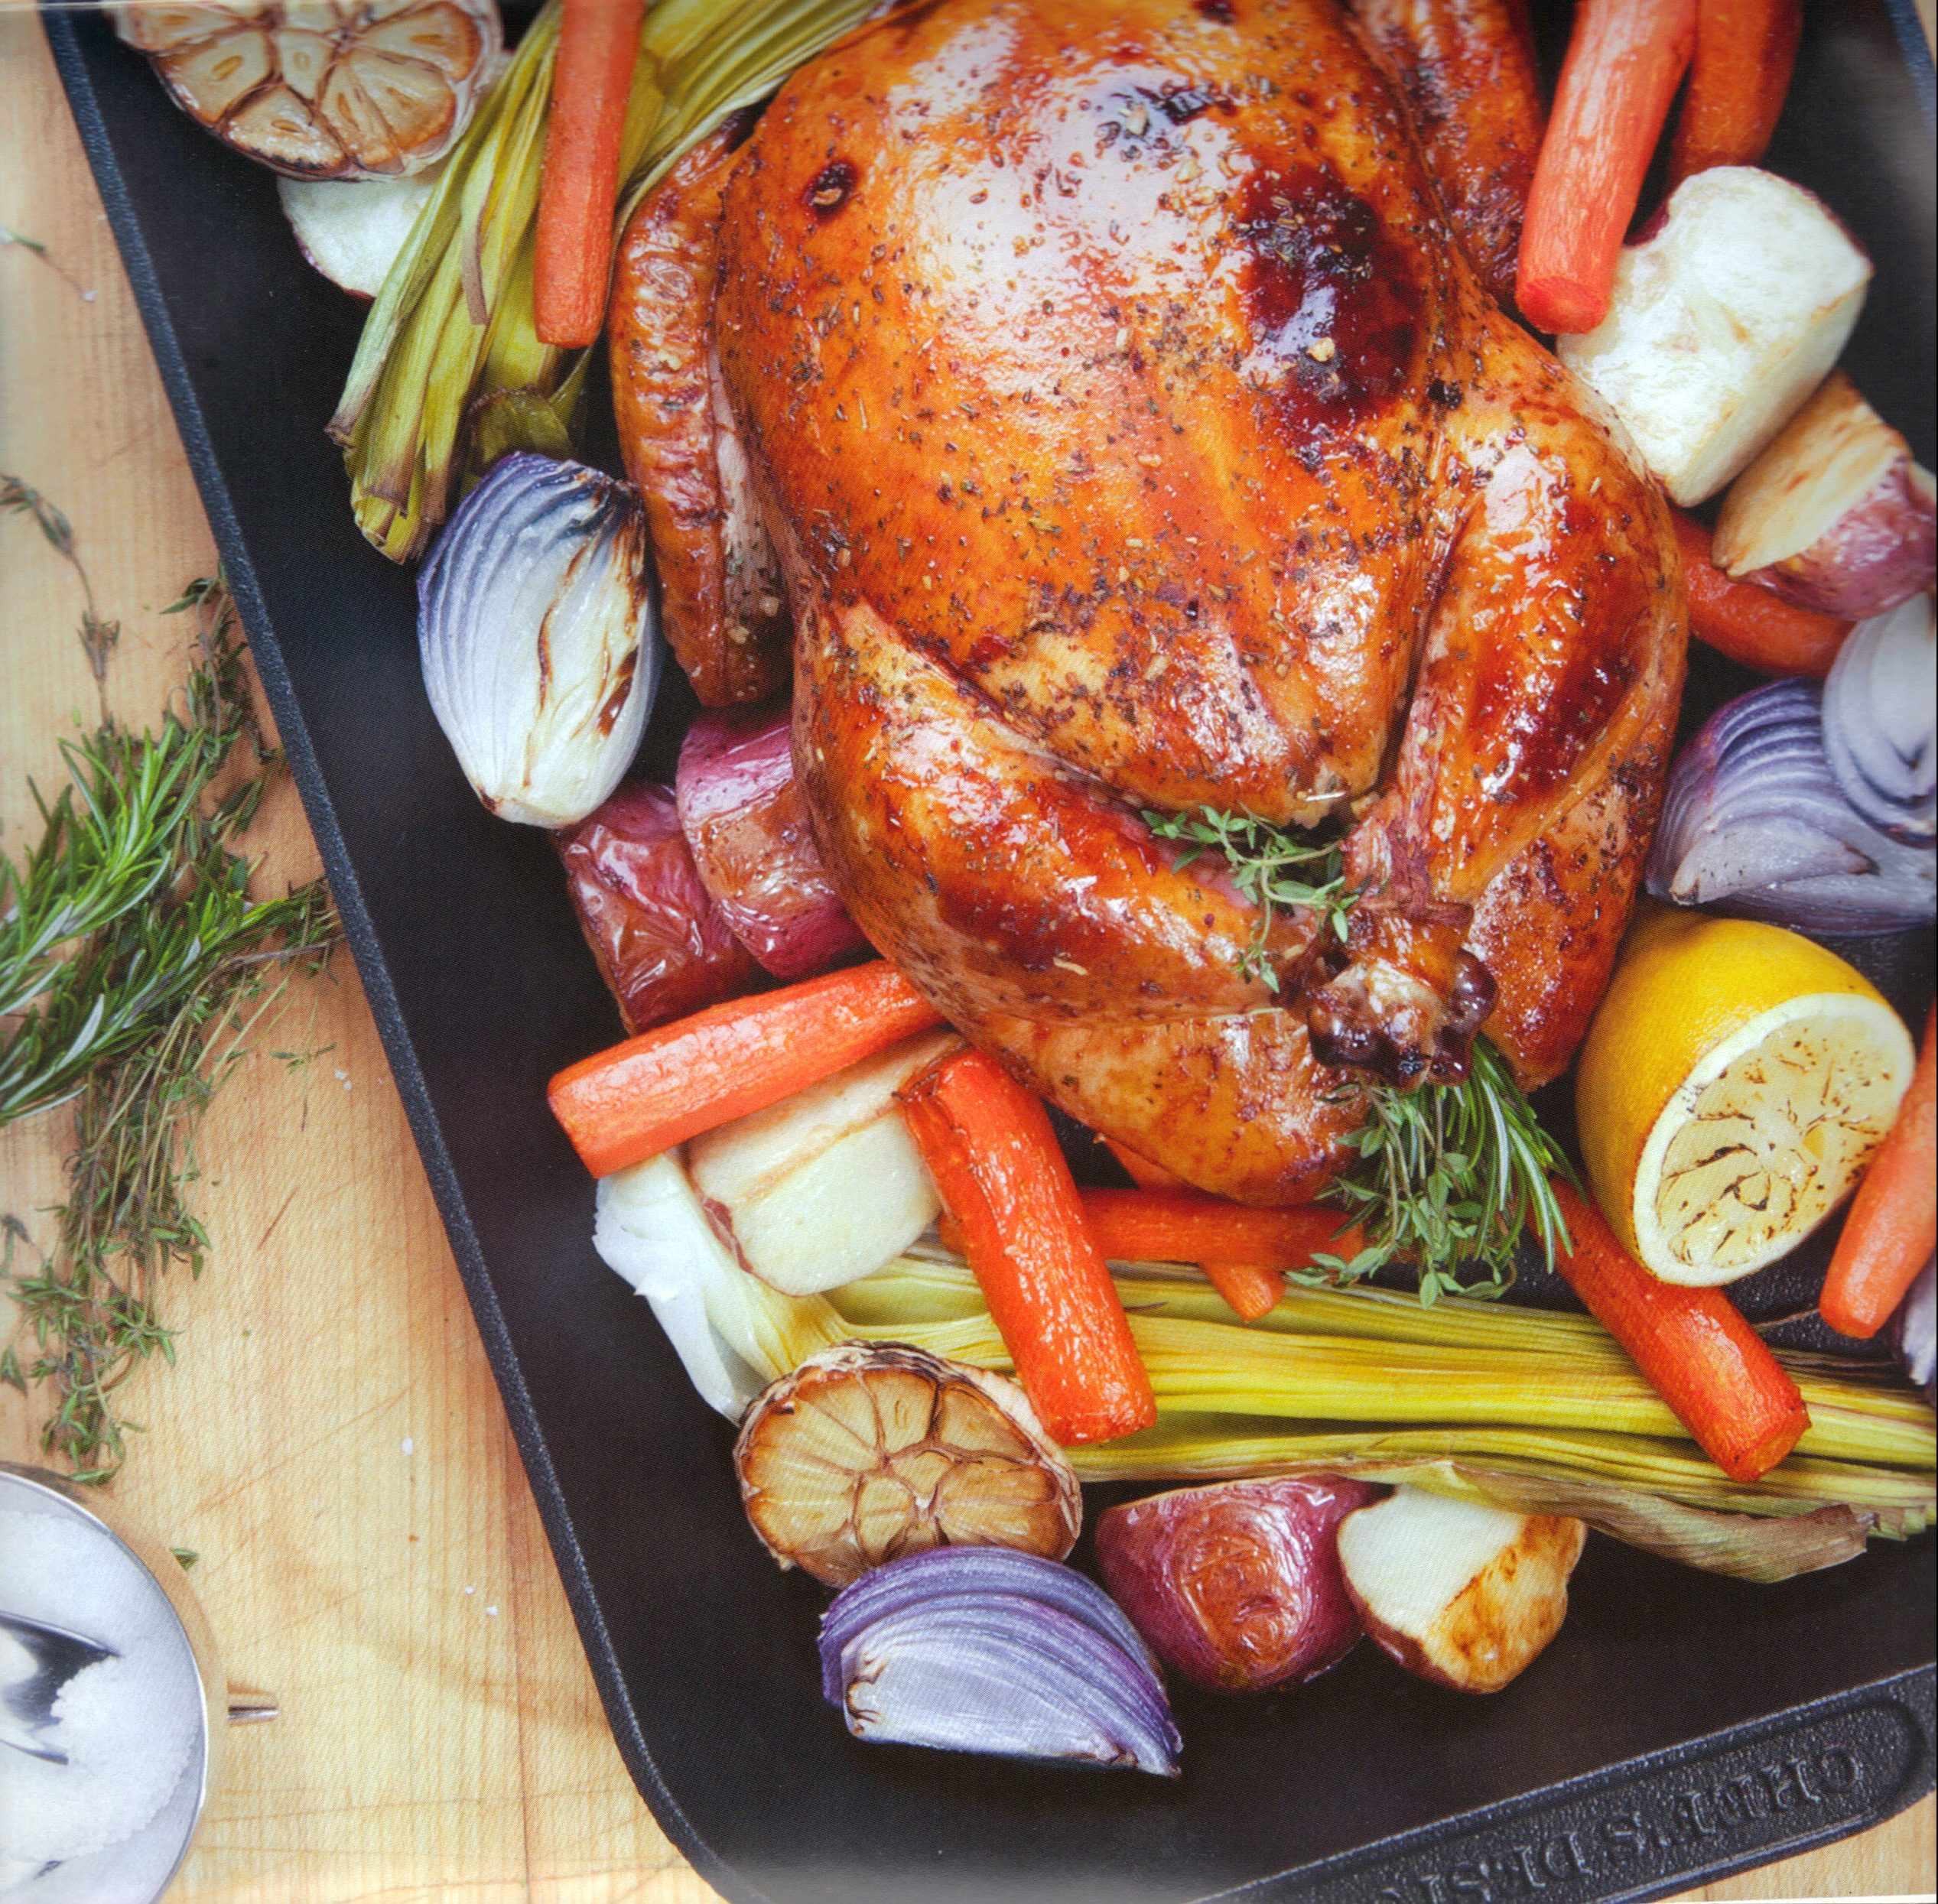 ChefsDesign® Roast Bake Pan